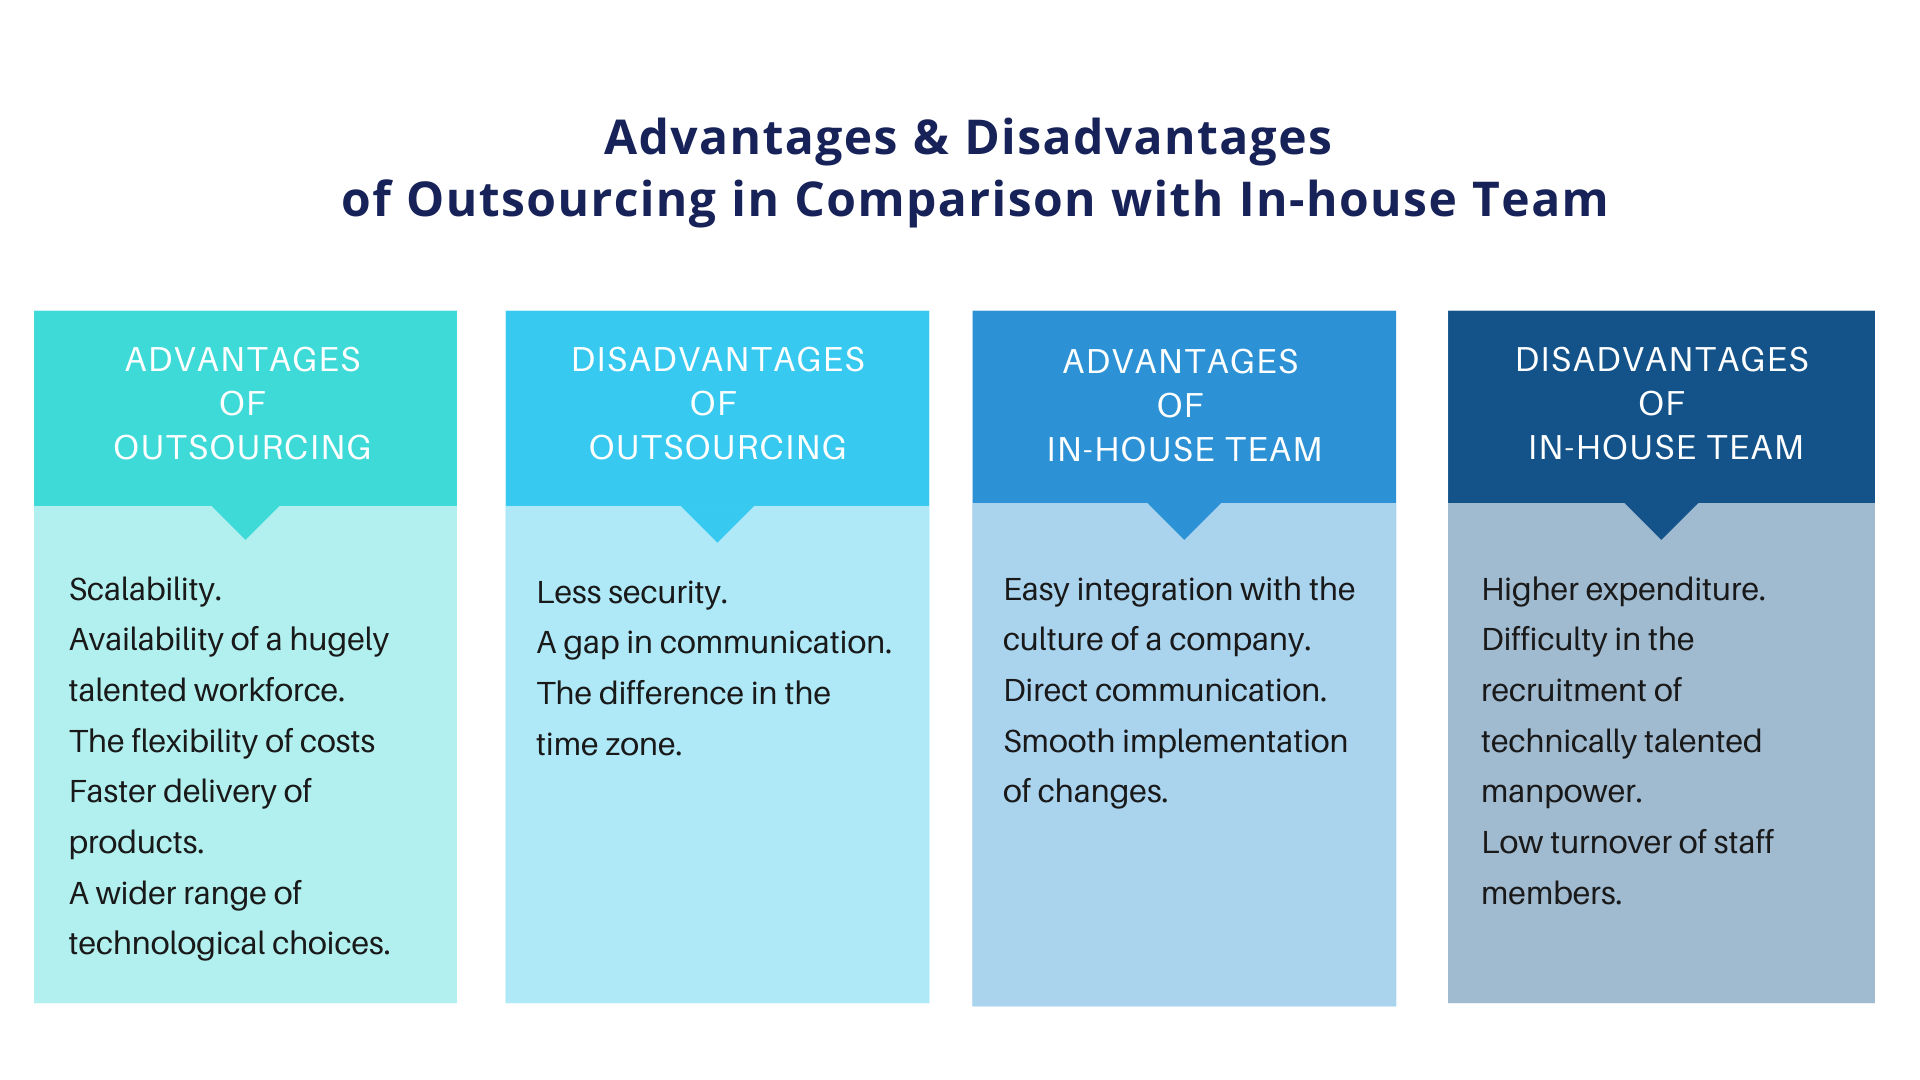 icts-advantages-and-disadvantages-of-outsourcing-in-comparison-with-in-house-team